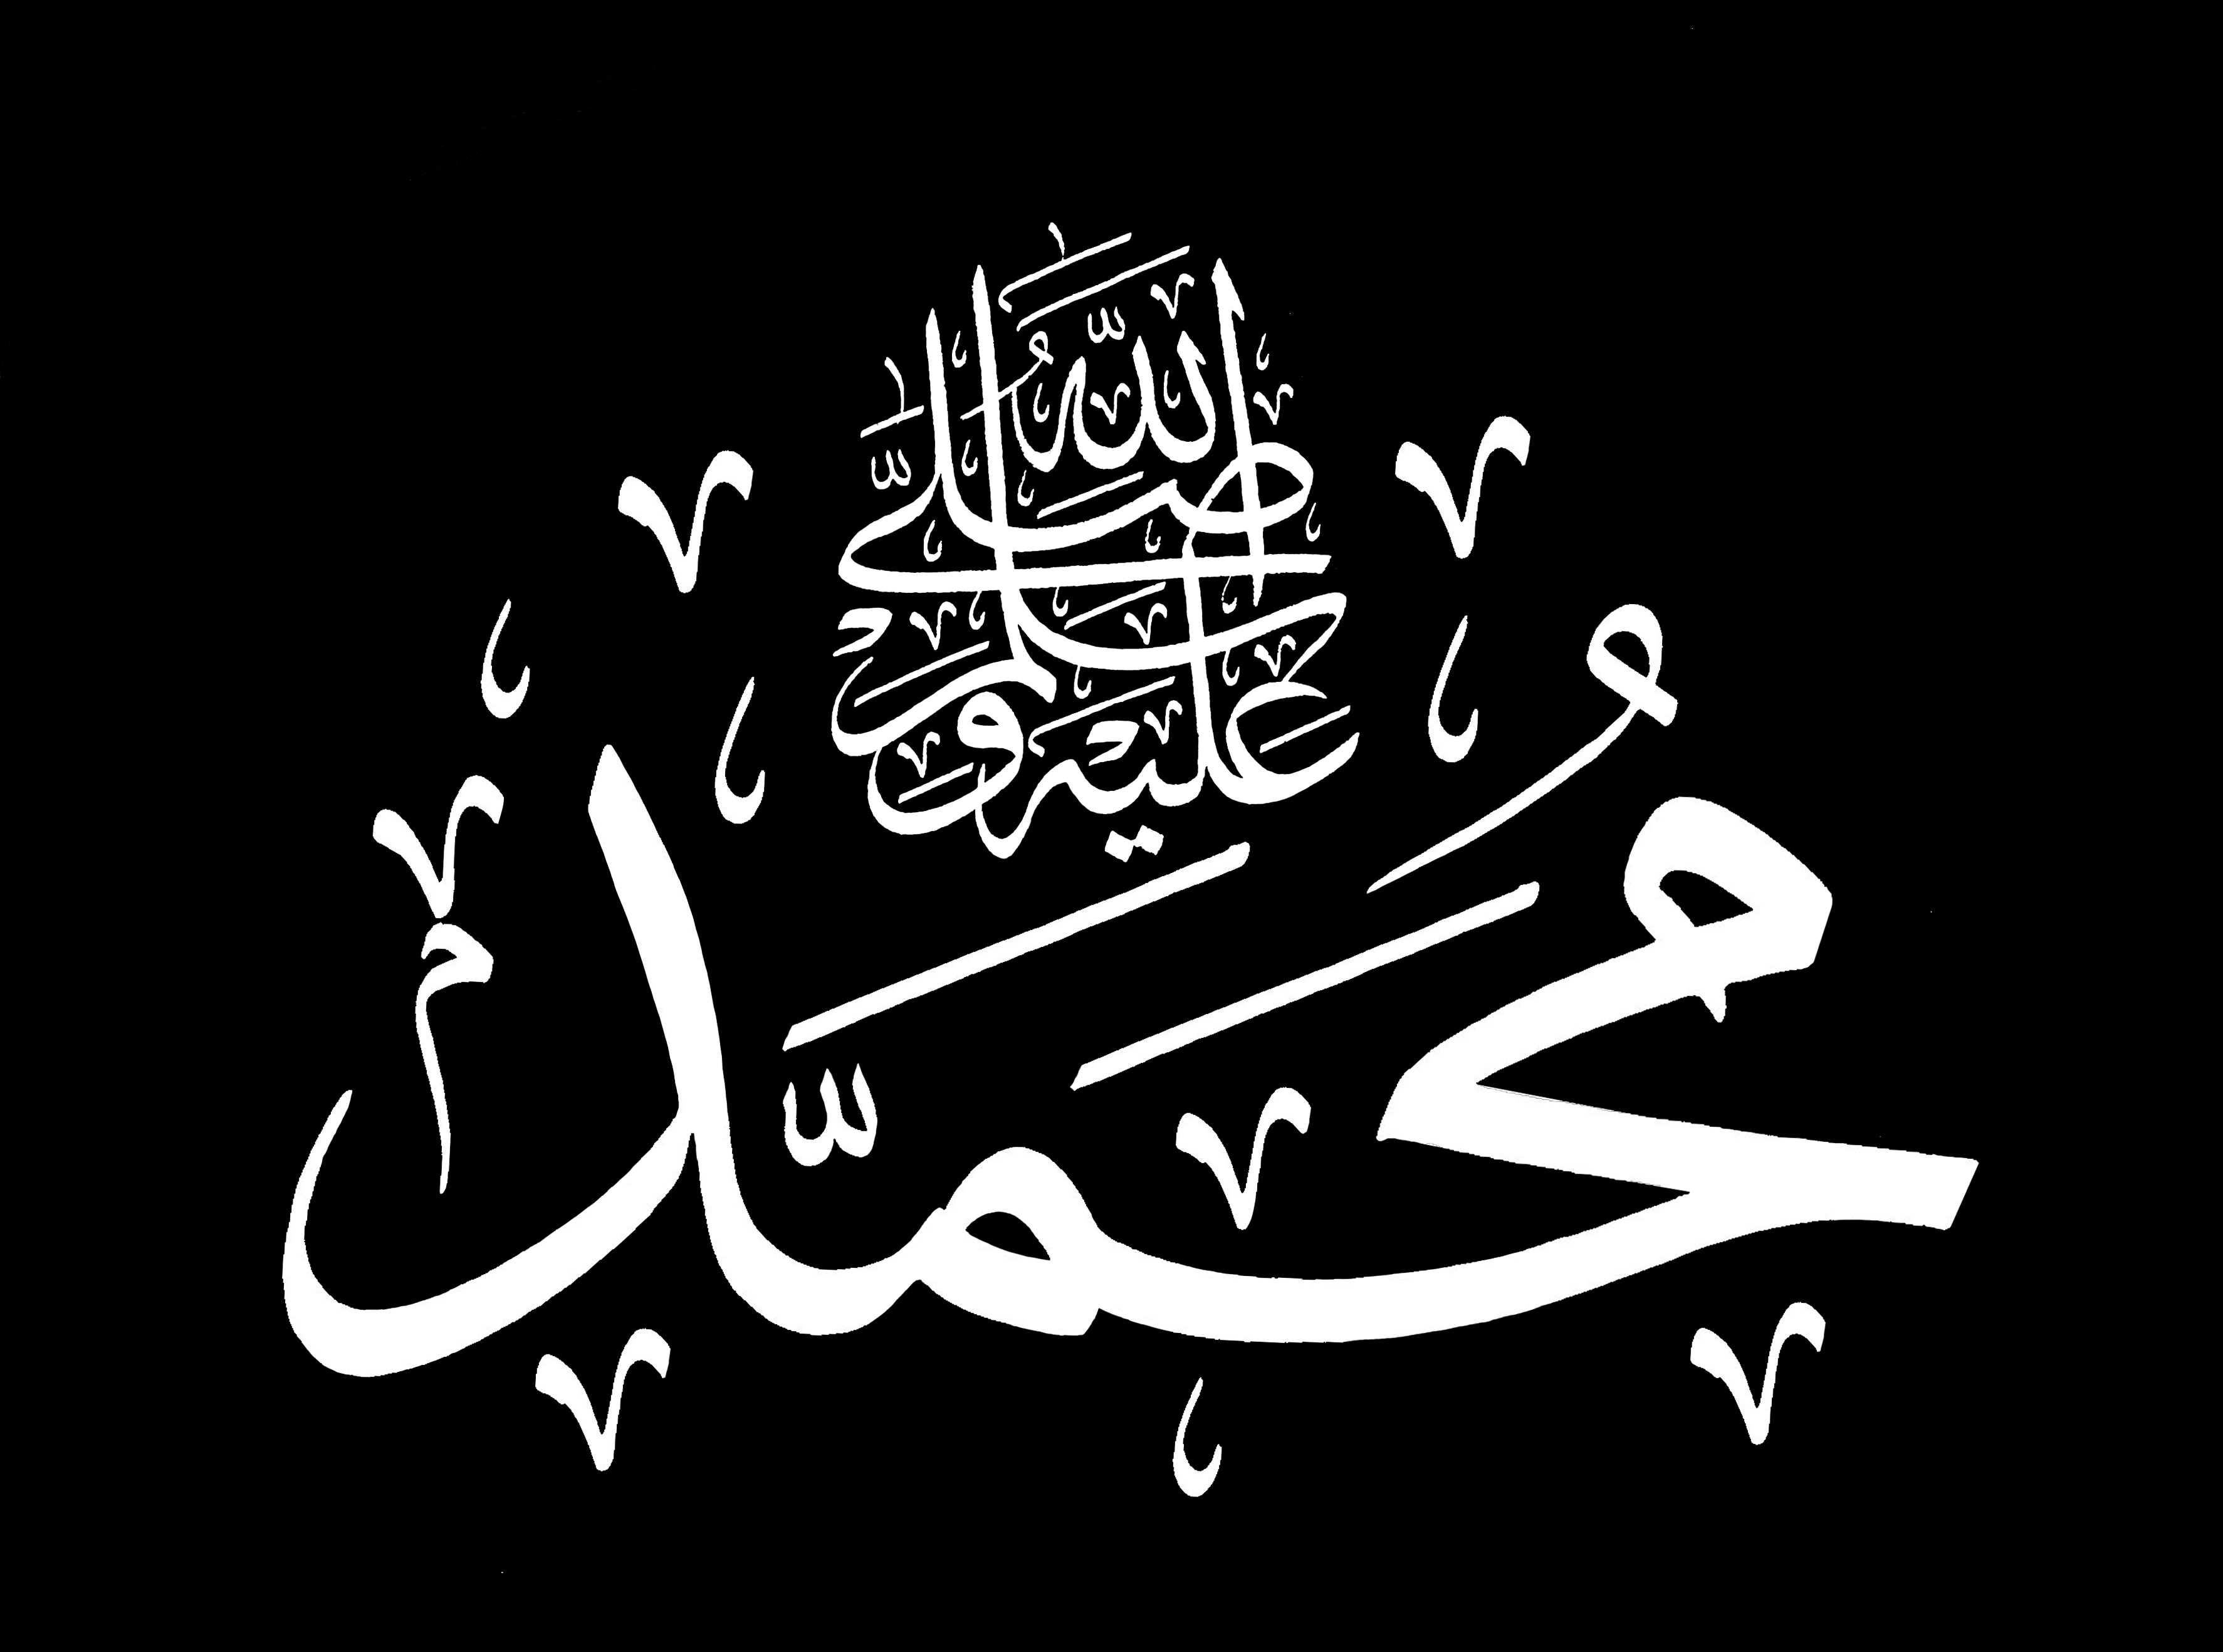 How To Get Iphone X Wallpaper From Commercial Free Islamic Calligraphy Muhammad 1 Black